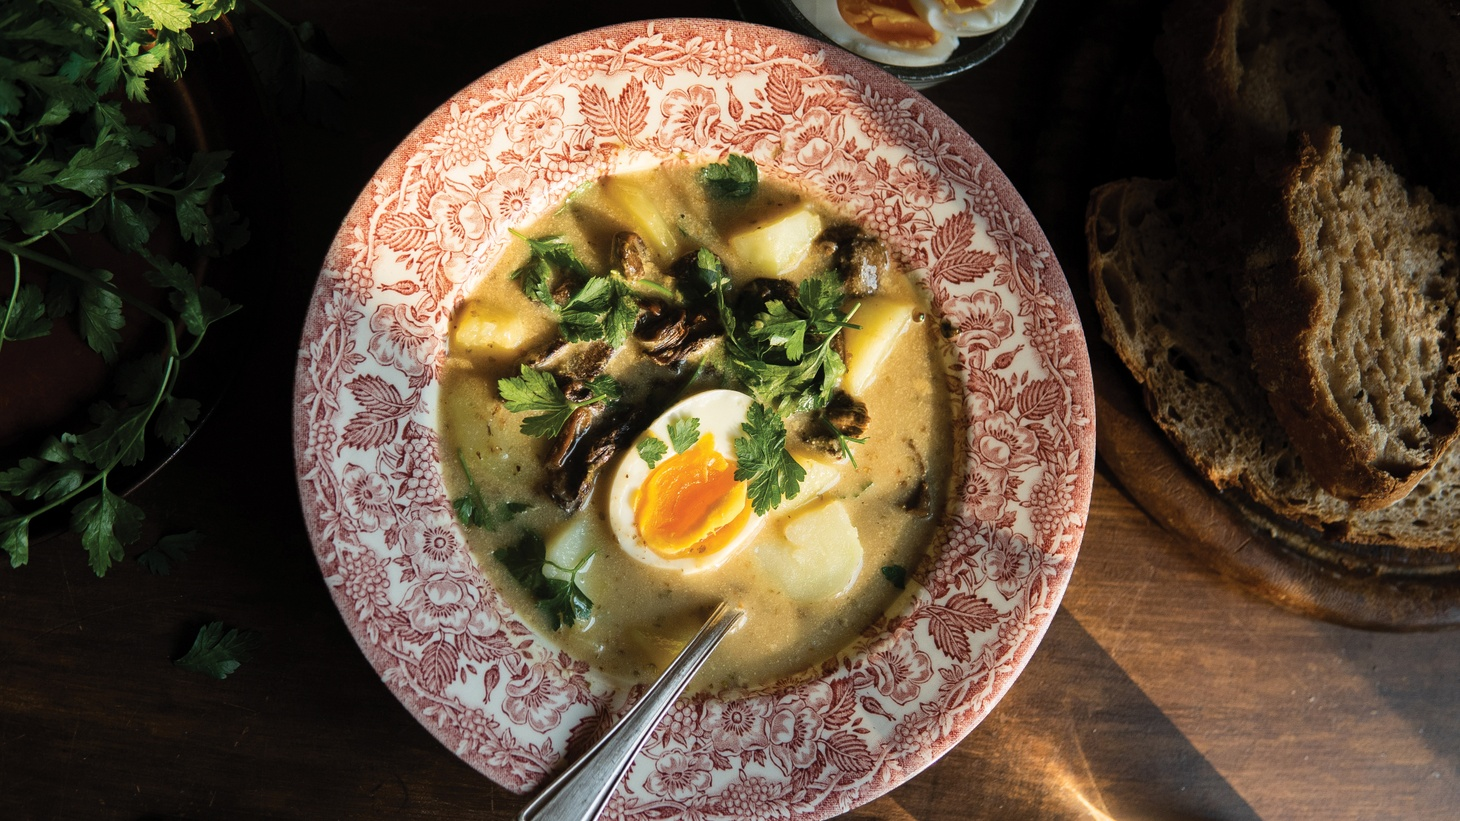 Zurek is a soup traditionally made with sausage. Michal Korkosz uses dried porcini and a soft boiled egg in his vegetarian version.